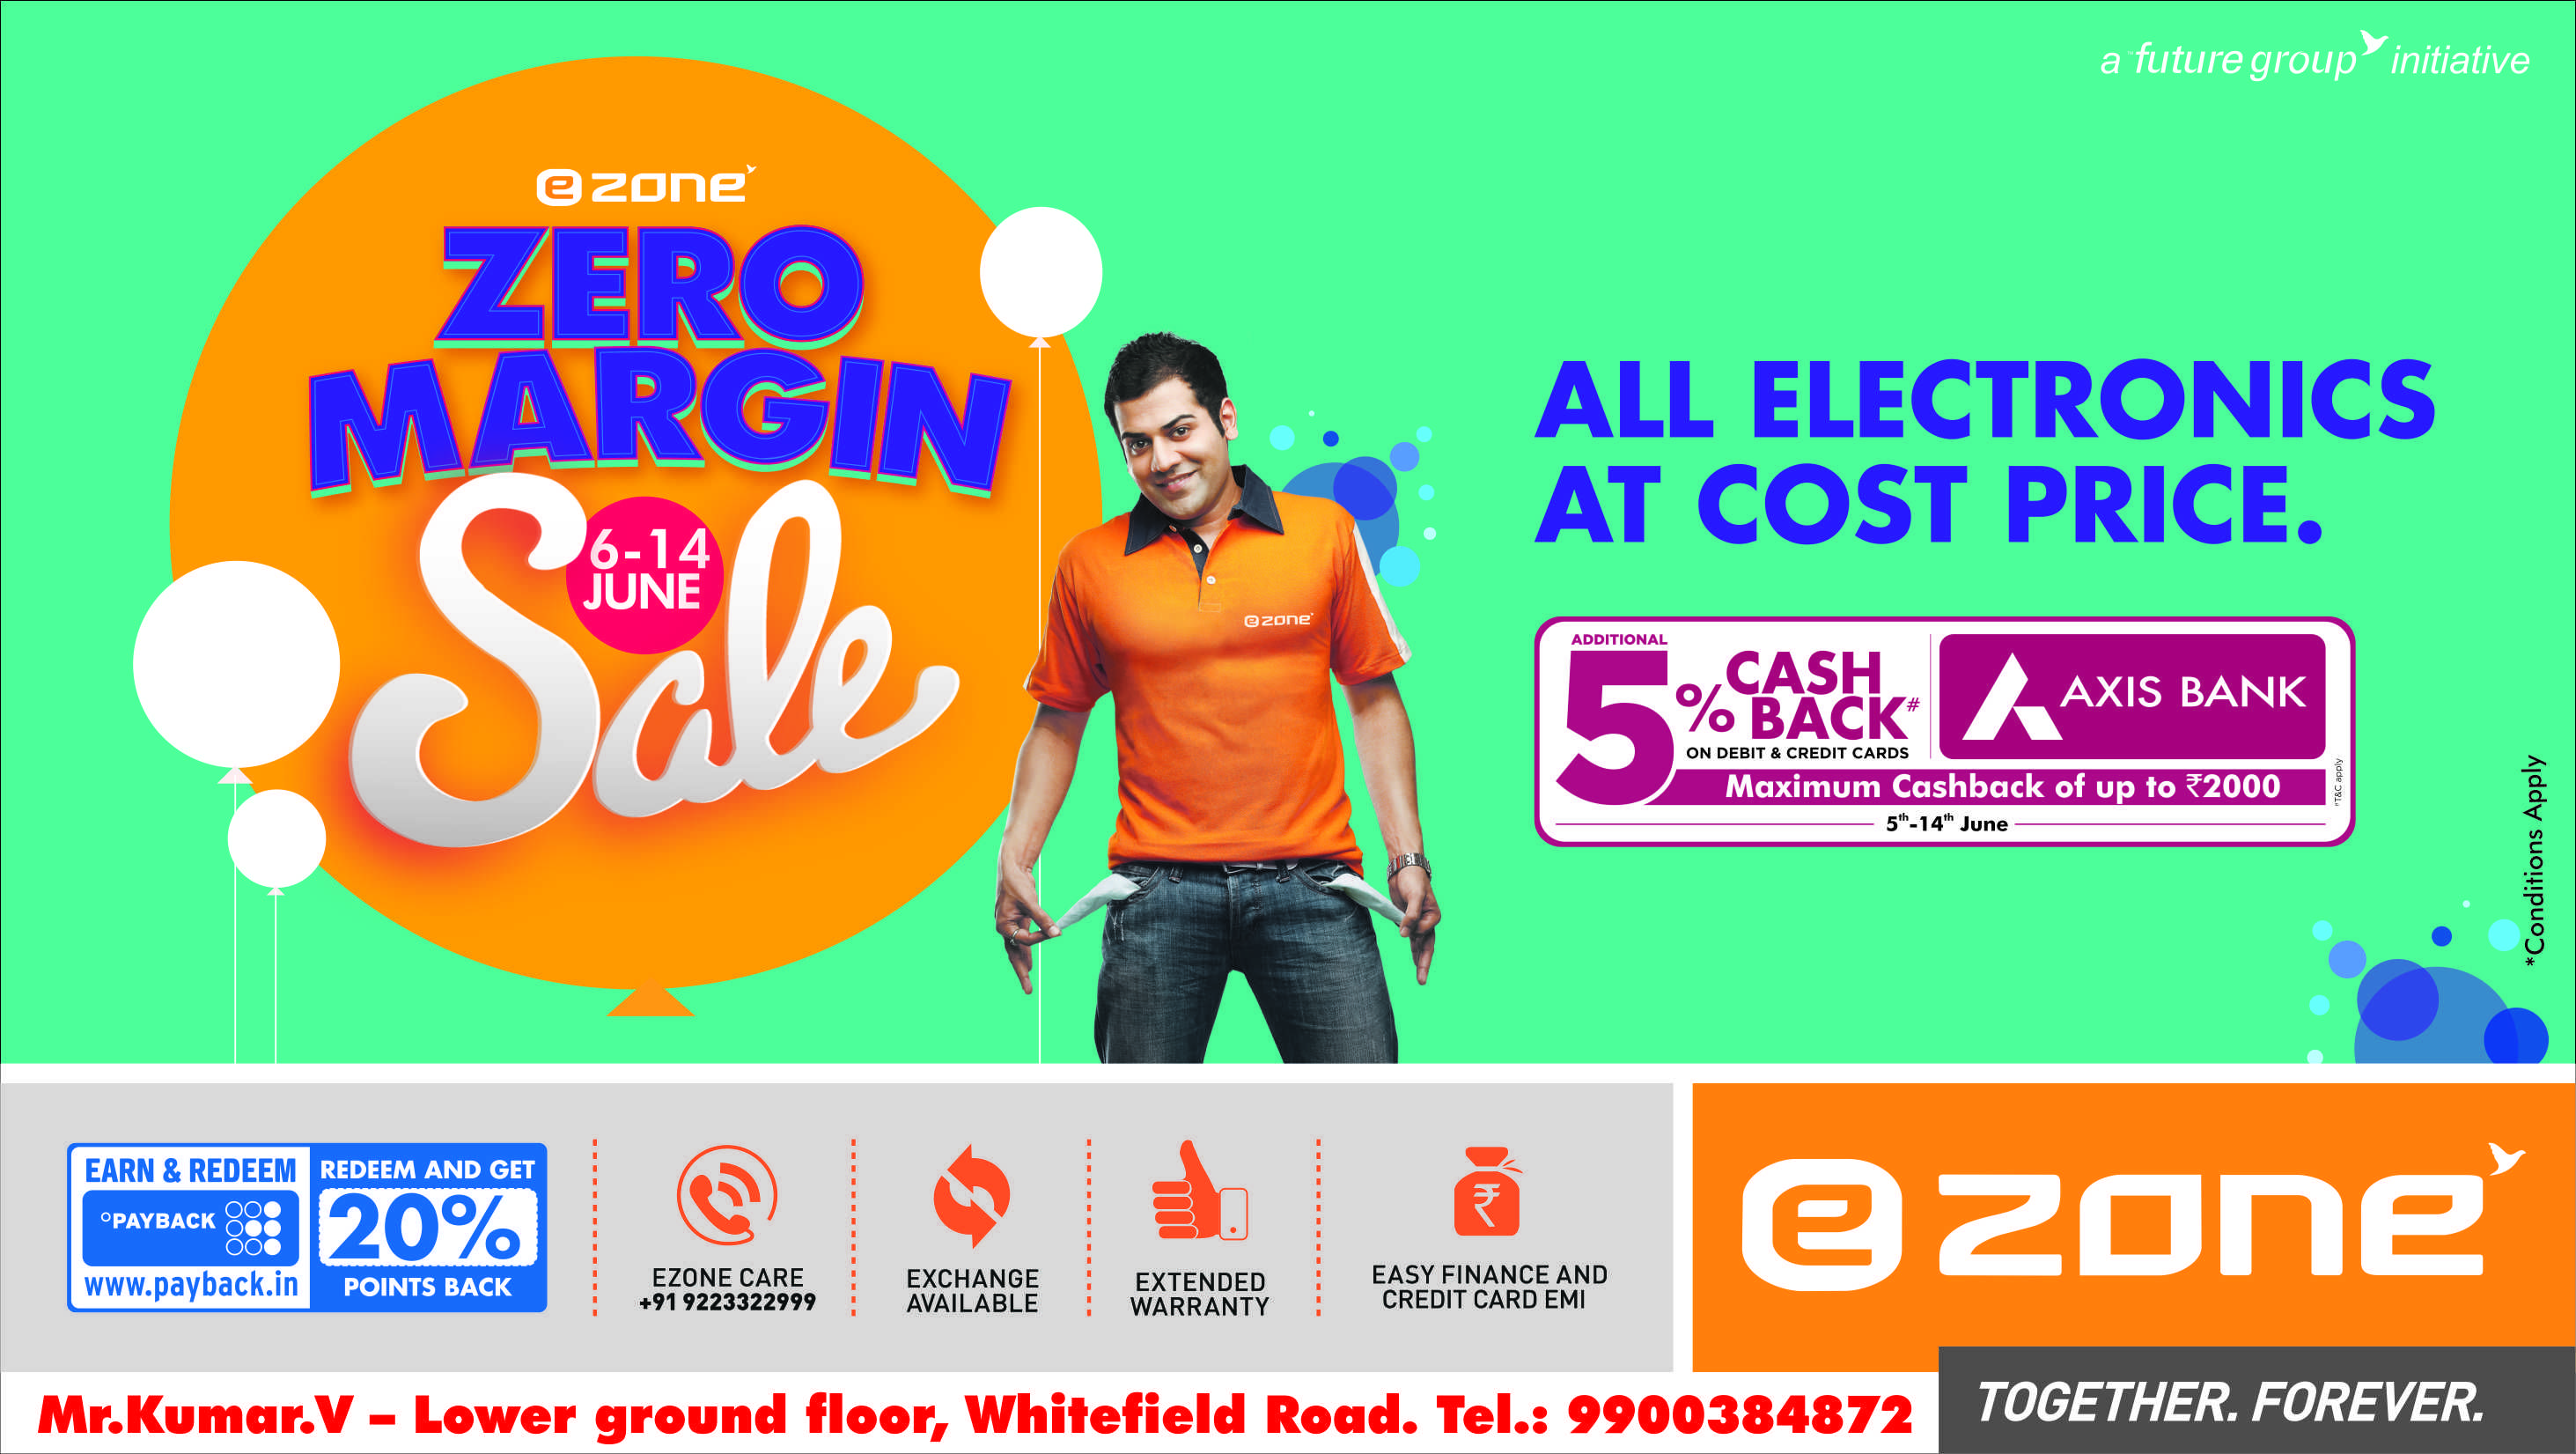 Come Visit Ezone at Lower Ground Floor at Phoenix Marketcity Bangalore for the #ZeroMarginSale from 6th to 14th June.